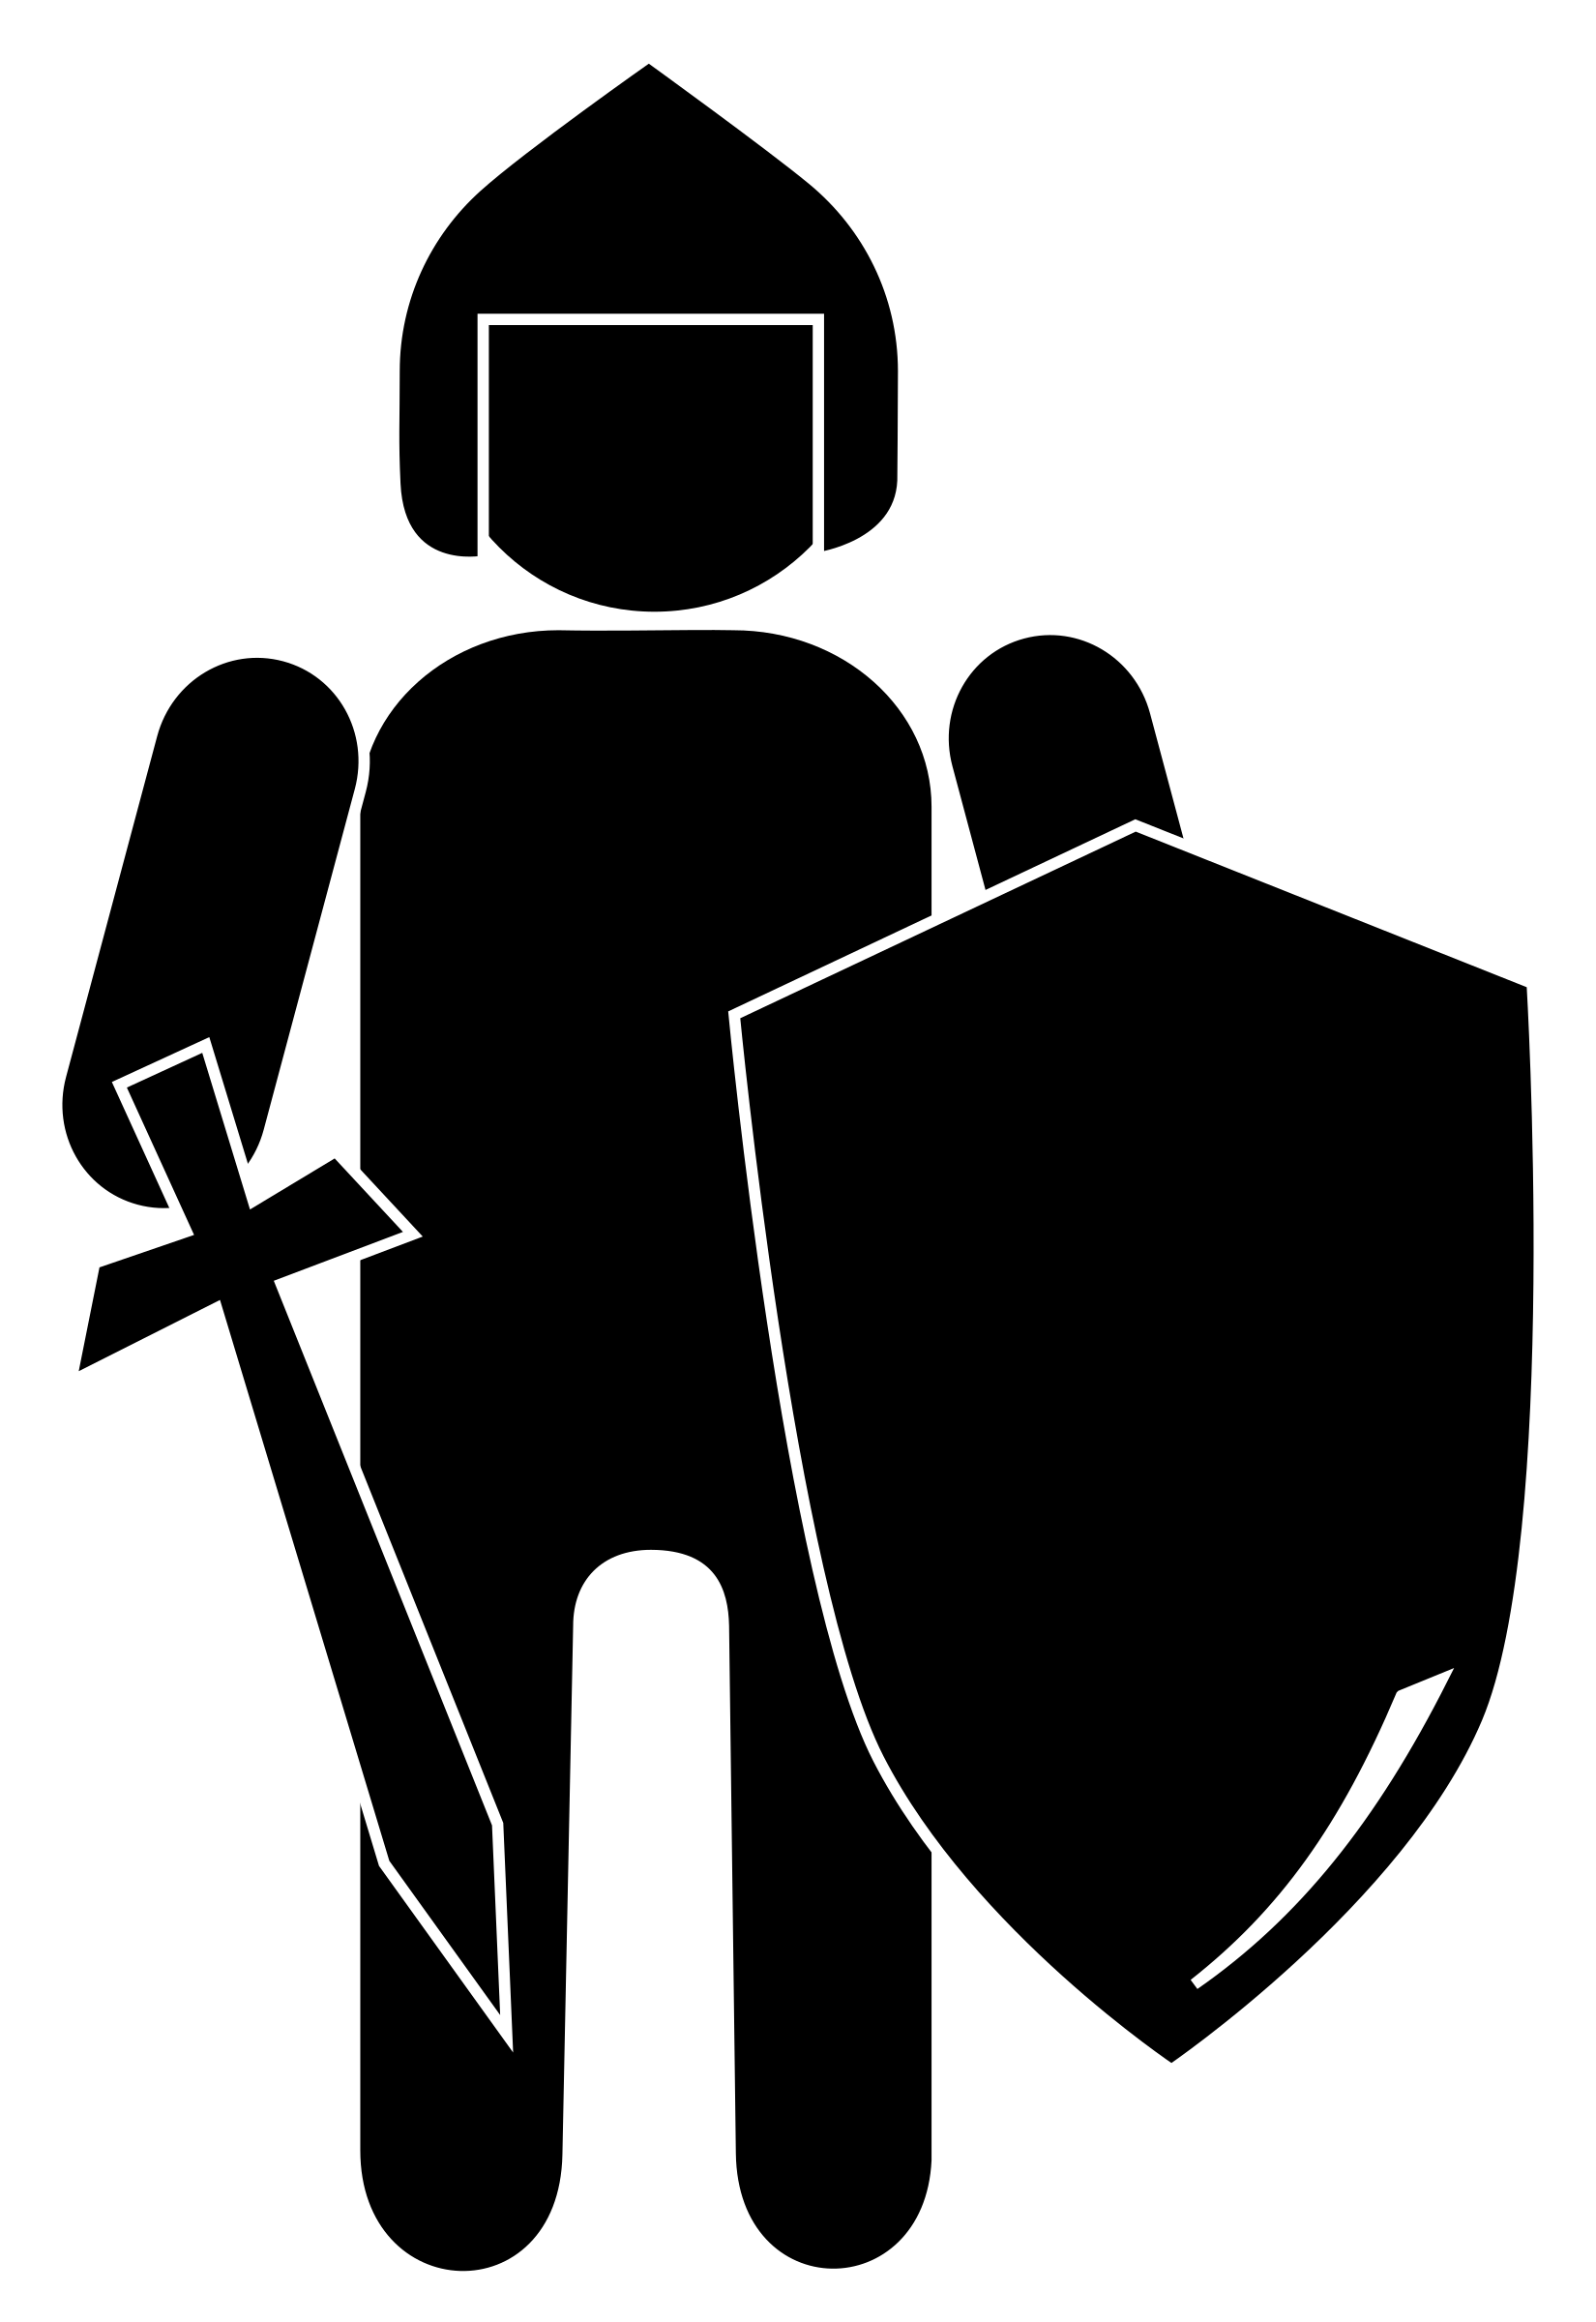 Knights vector knight riding horse. Shield clipart silhouette free